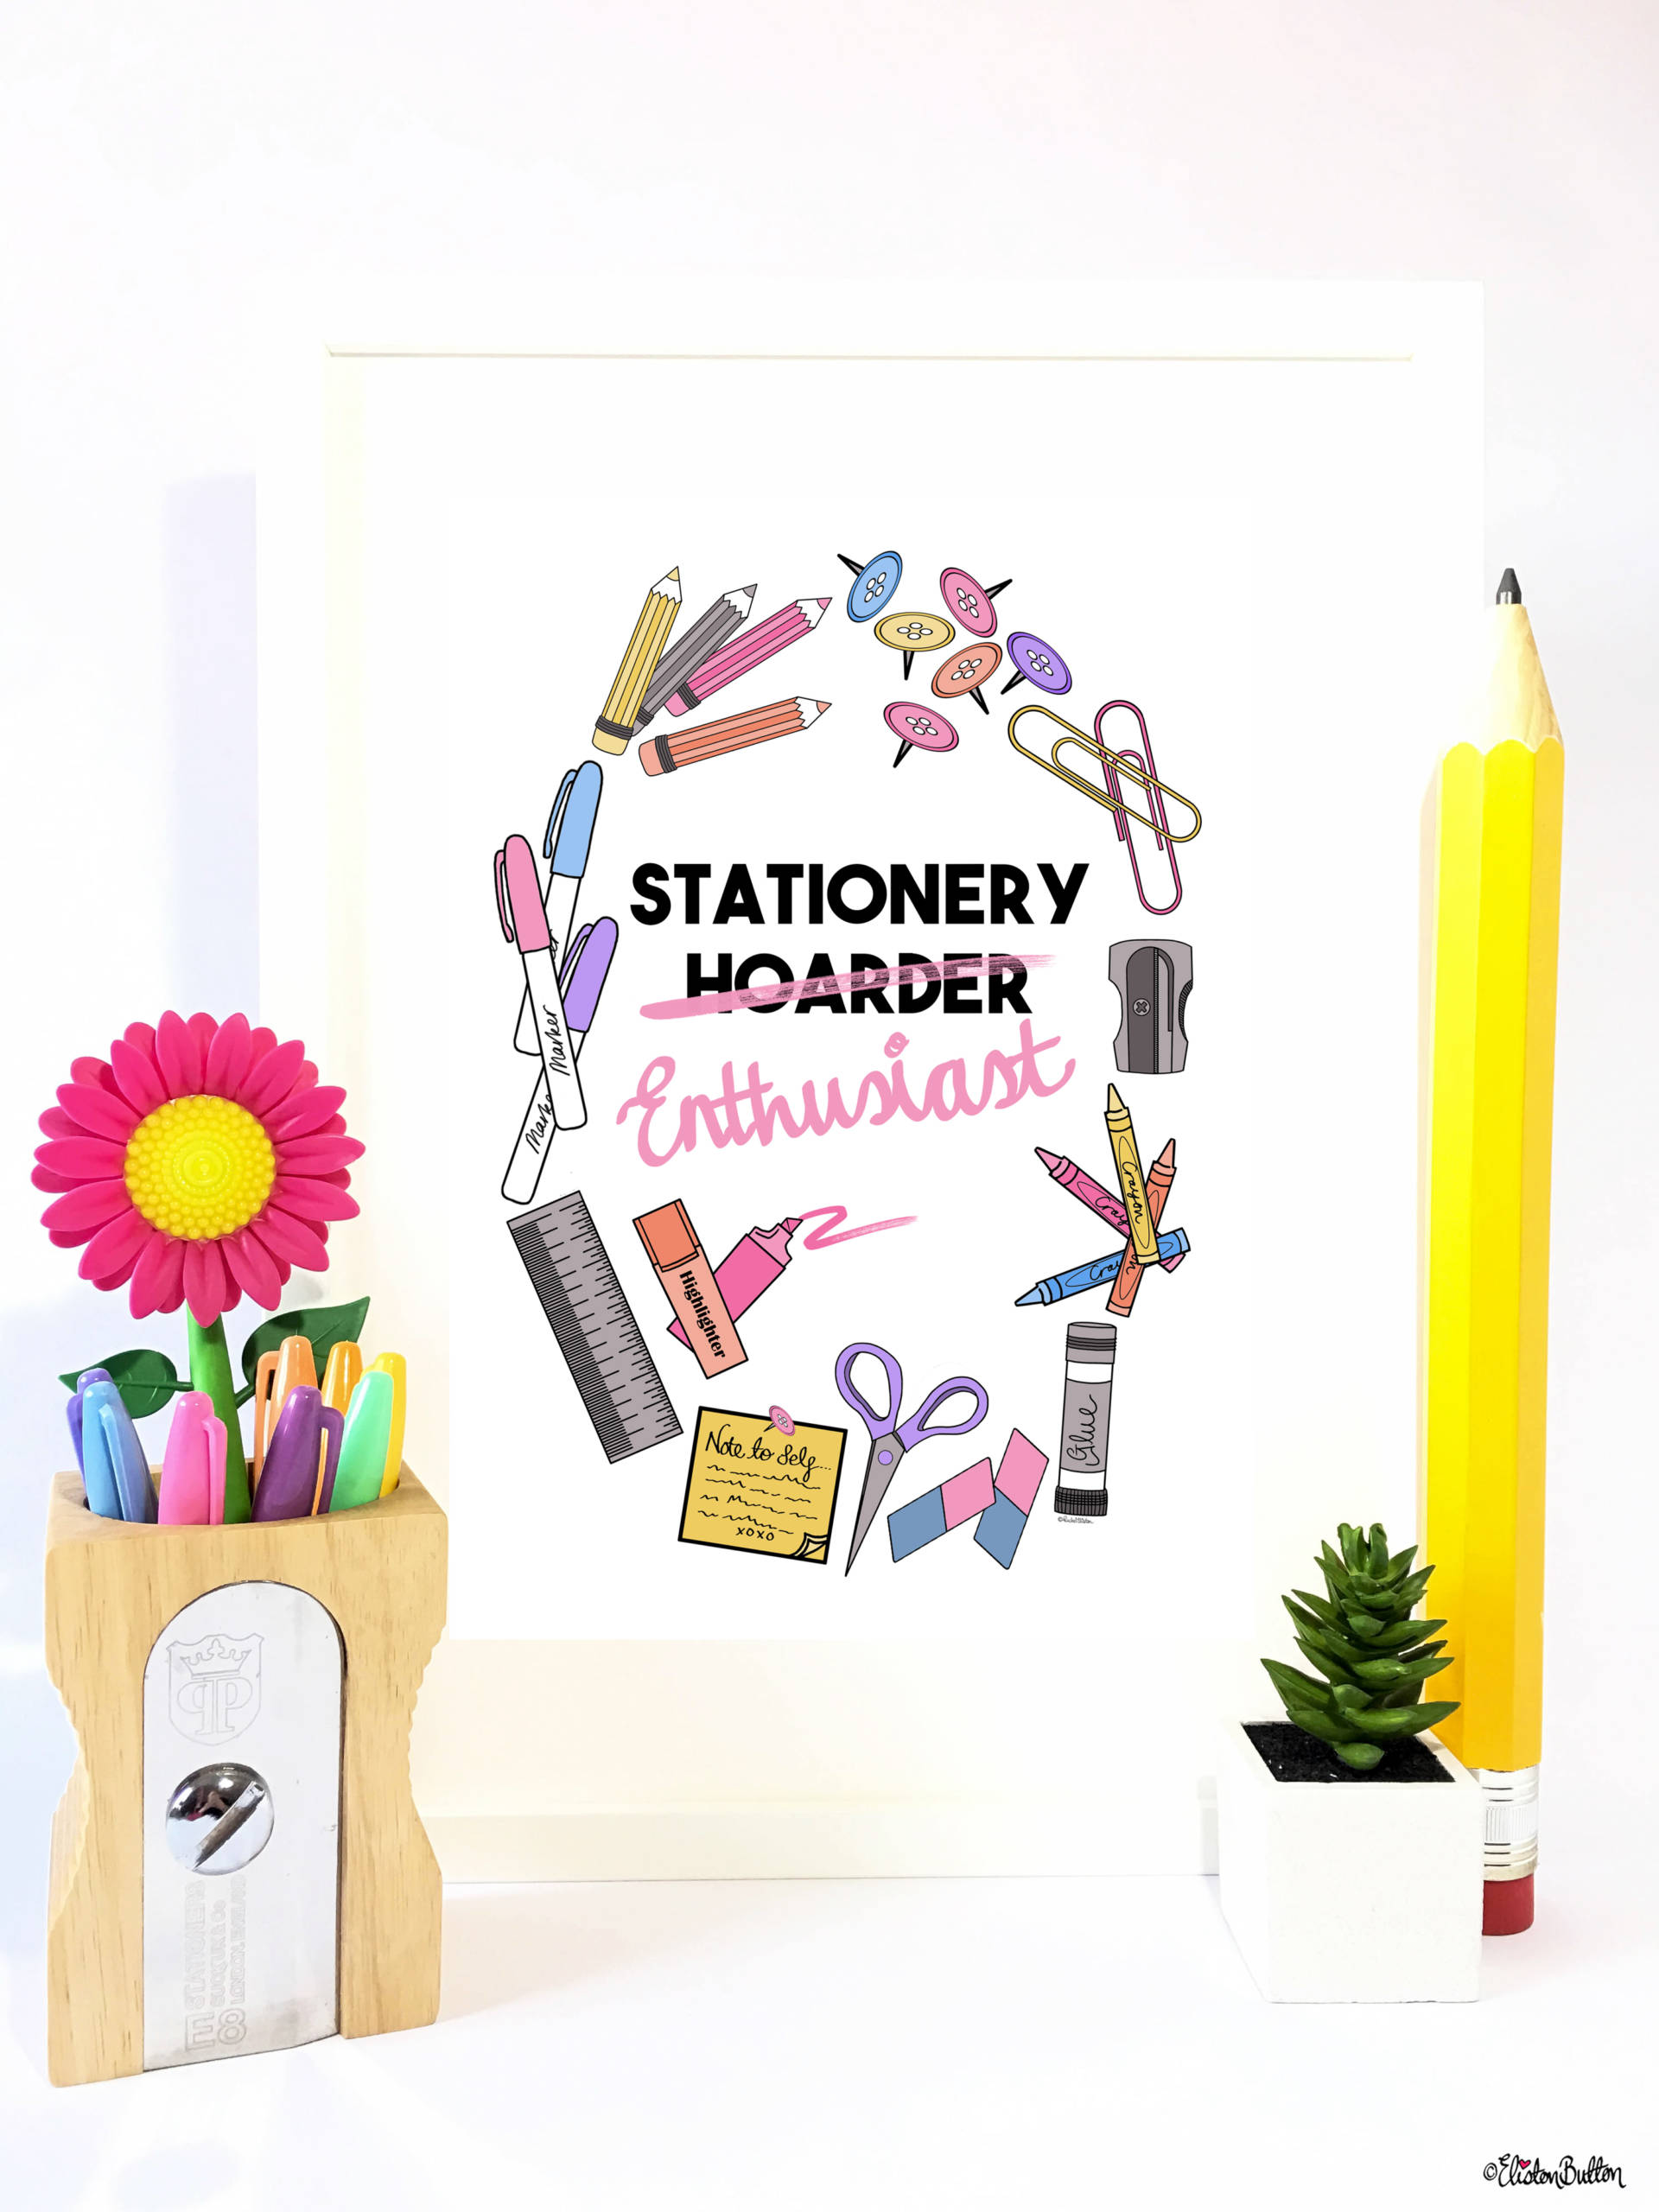 Stationery Enthusiast Print by Eliston Button in Frame with Giant Pencil and Sharpener - National Stationery Week Sale at www.elistonbutton.com - Eliston Button - That Crafty Kid – Art, Design, Craft & Adventure.